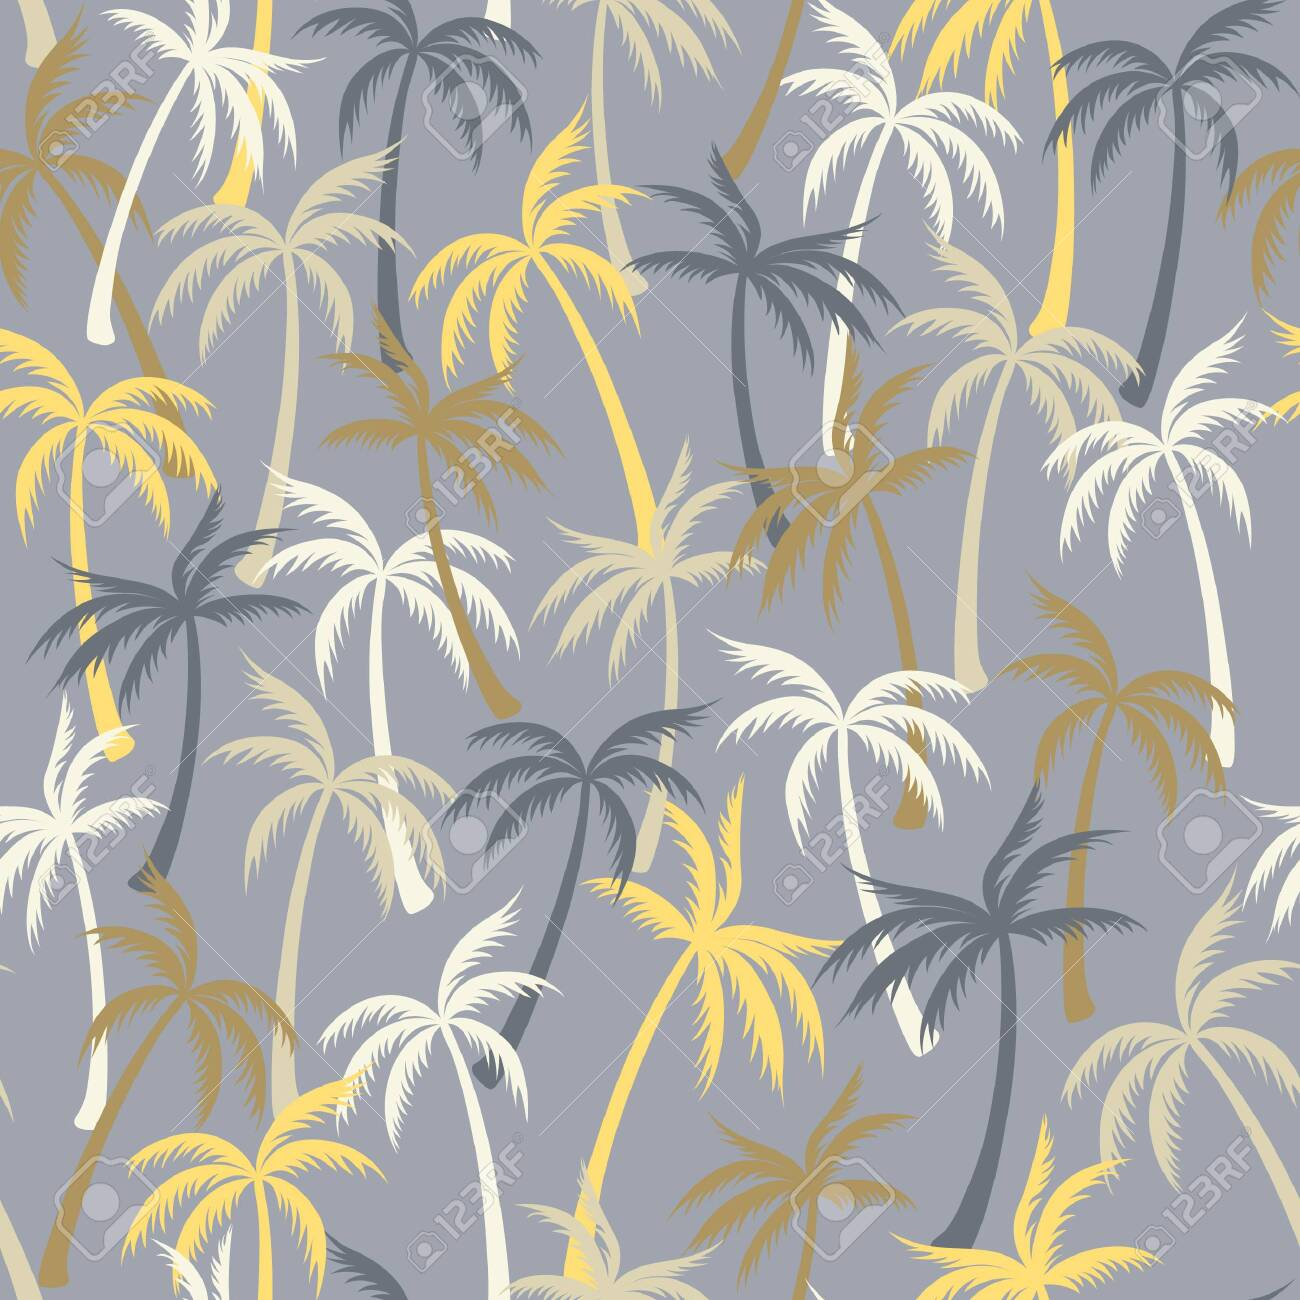 Coconut Palm Tree Pattern Textile Seamless Tropical Forest Background Royalty Free Cliparts Vectors And Stock Illustration Image 142028811